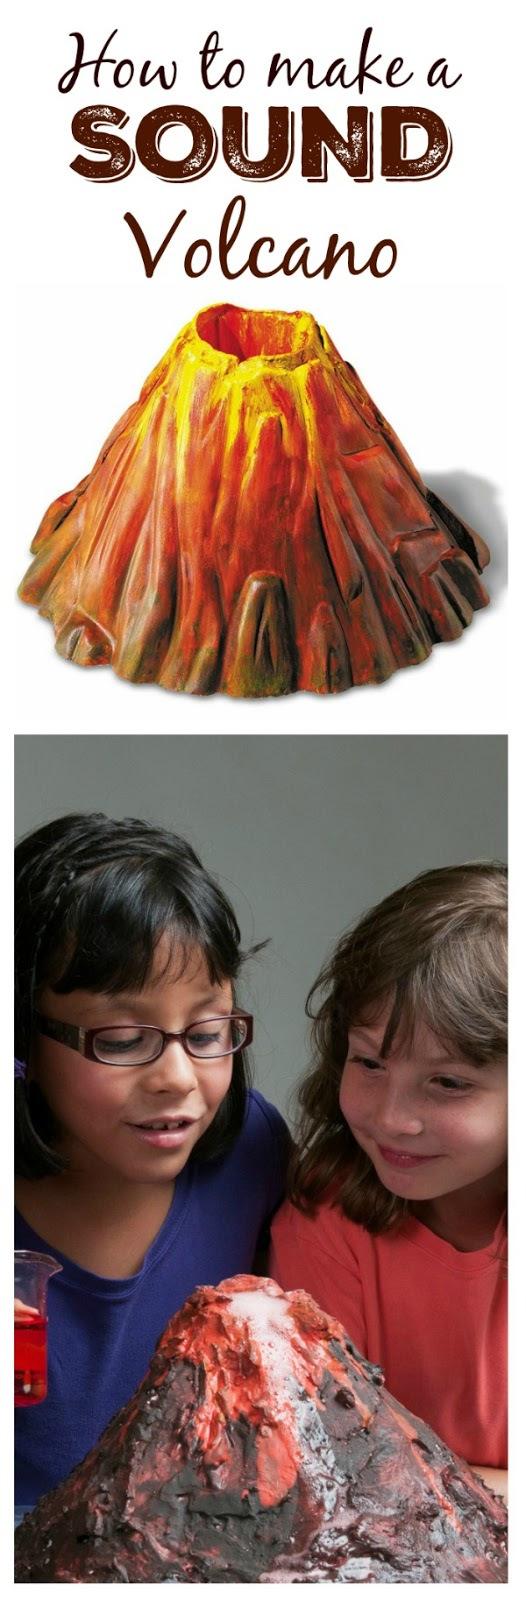 COOL SCIENCE: MAKE A POPPING, FIZZING, BUBBLING VOLCANO WITH KIDS